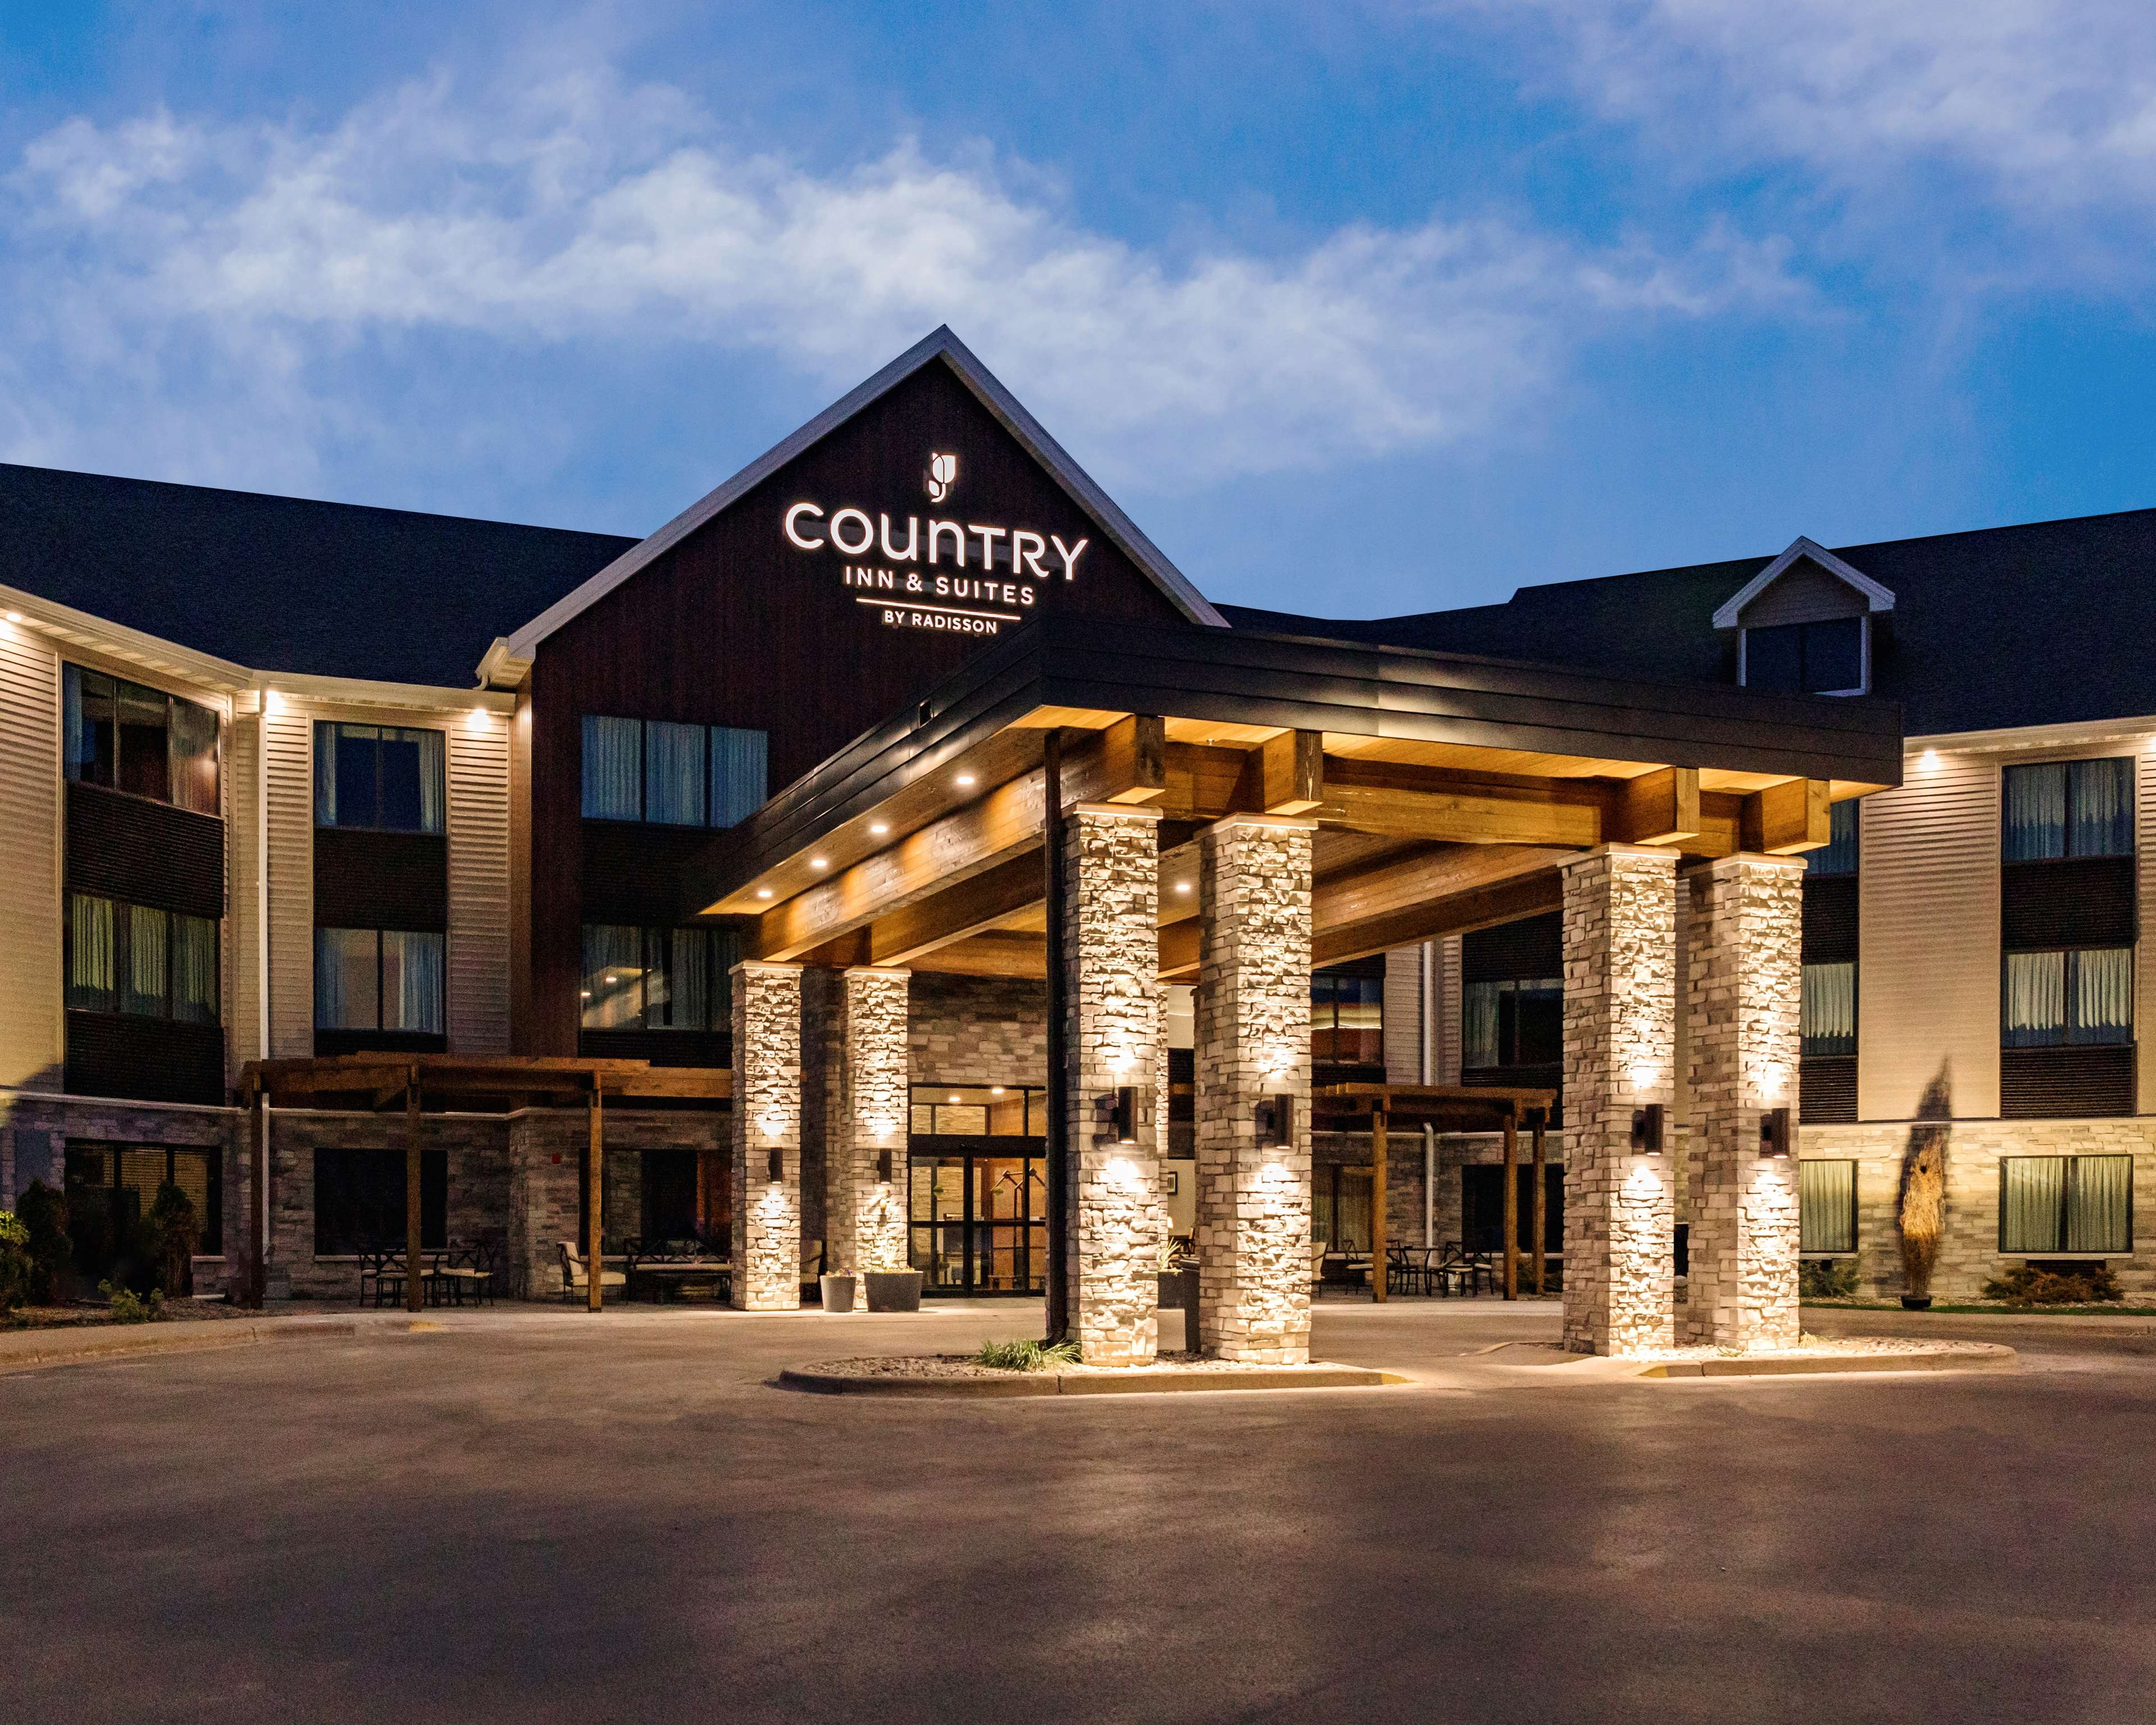 Country Inn Suites By Radisson Appleton Wi 355 Fox River Drive